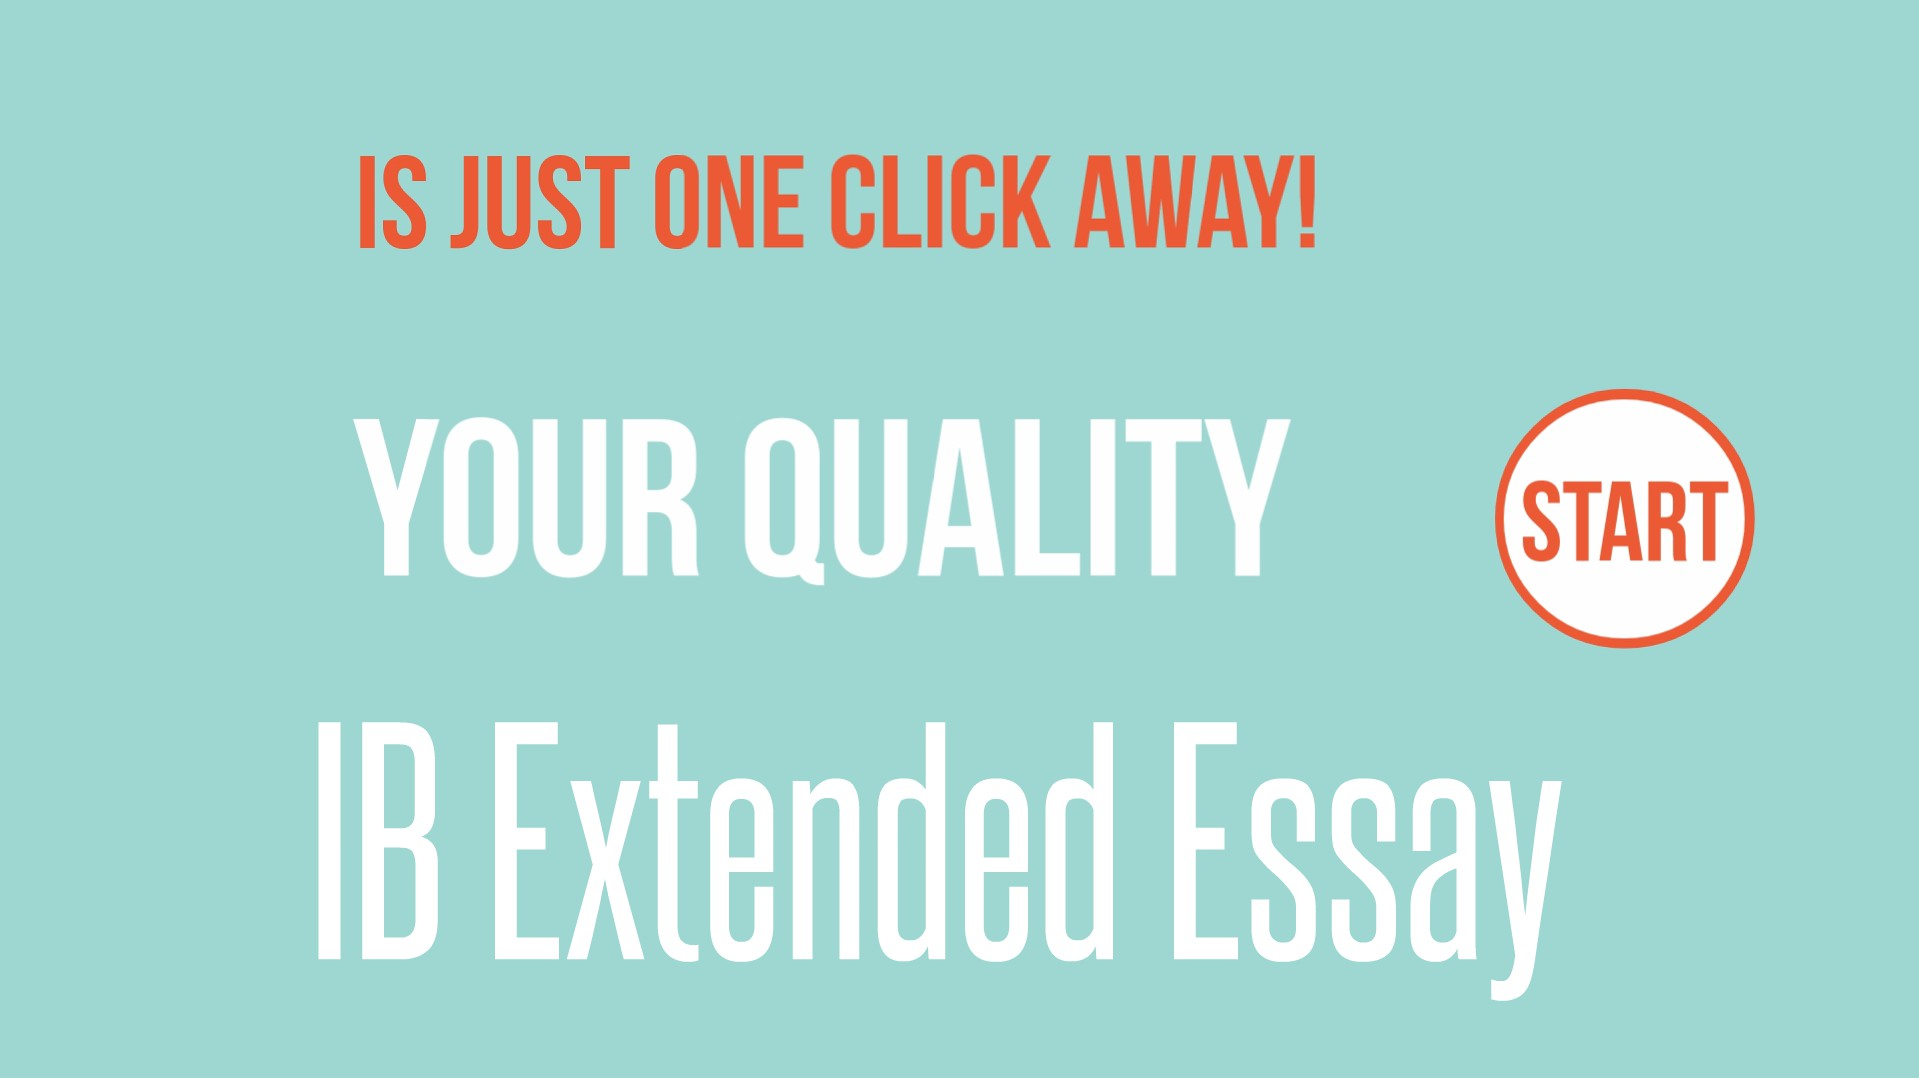 Help extended essay